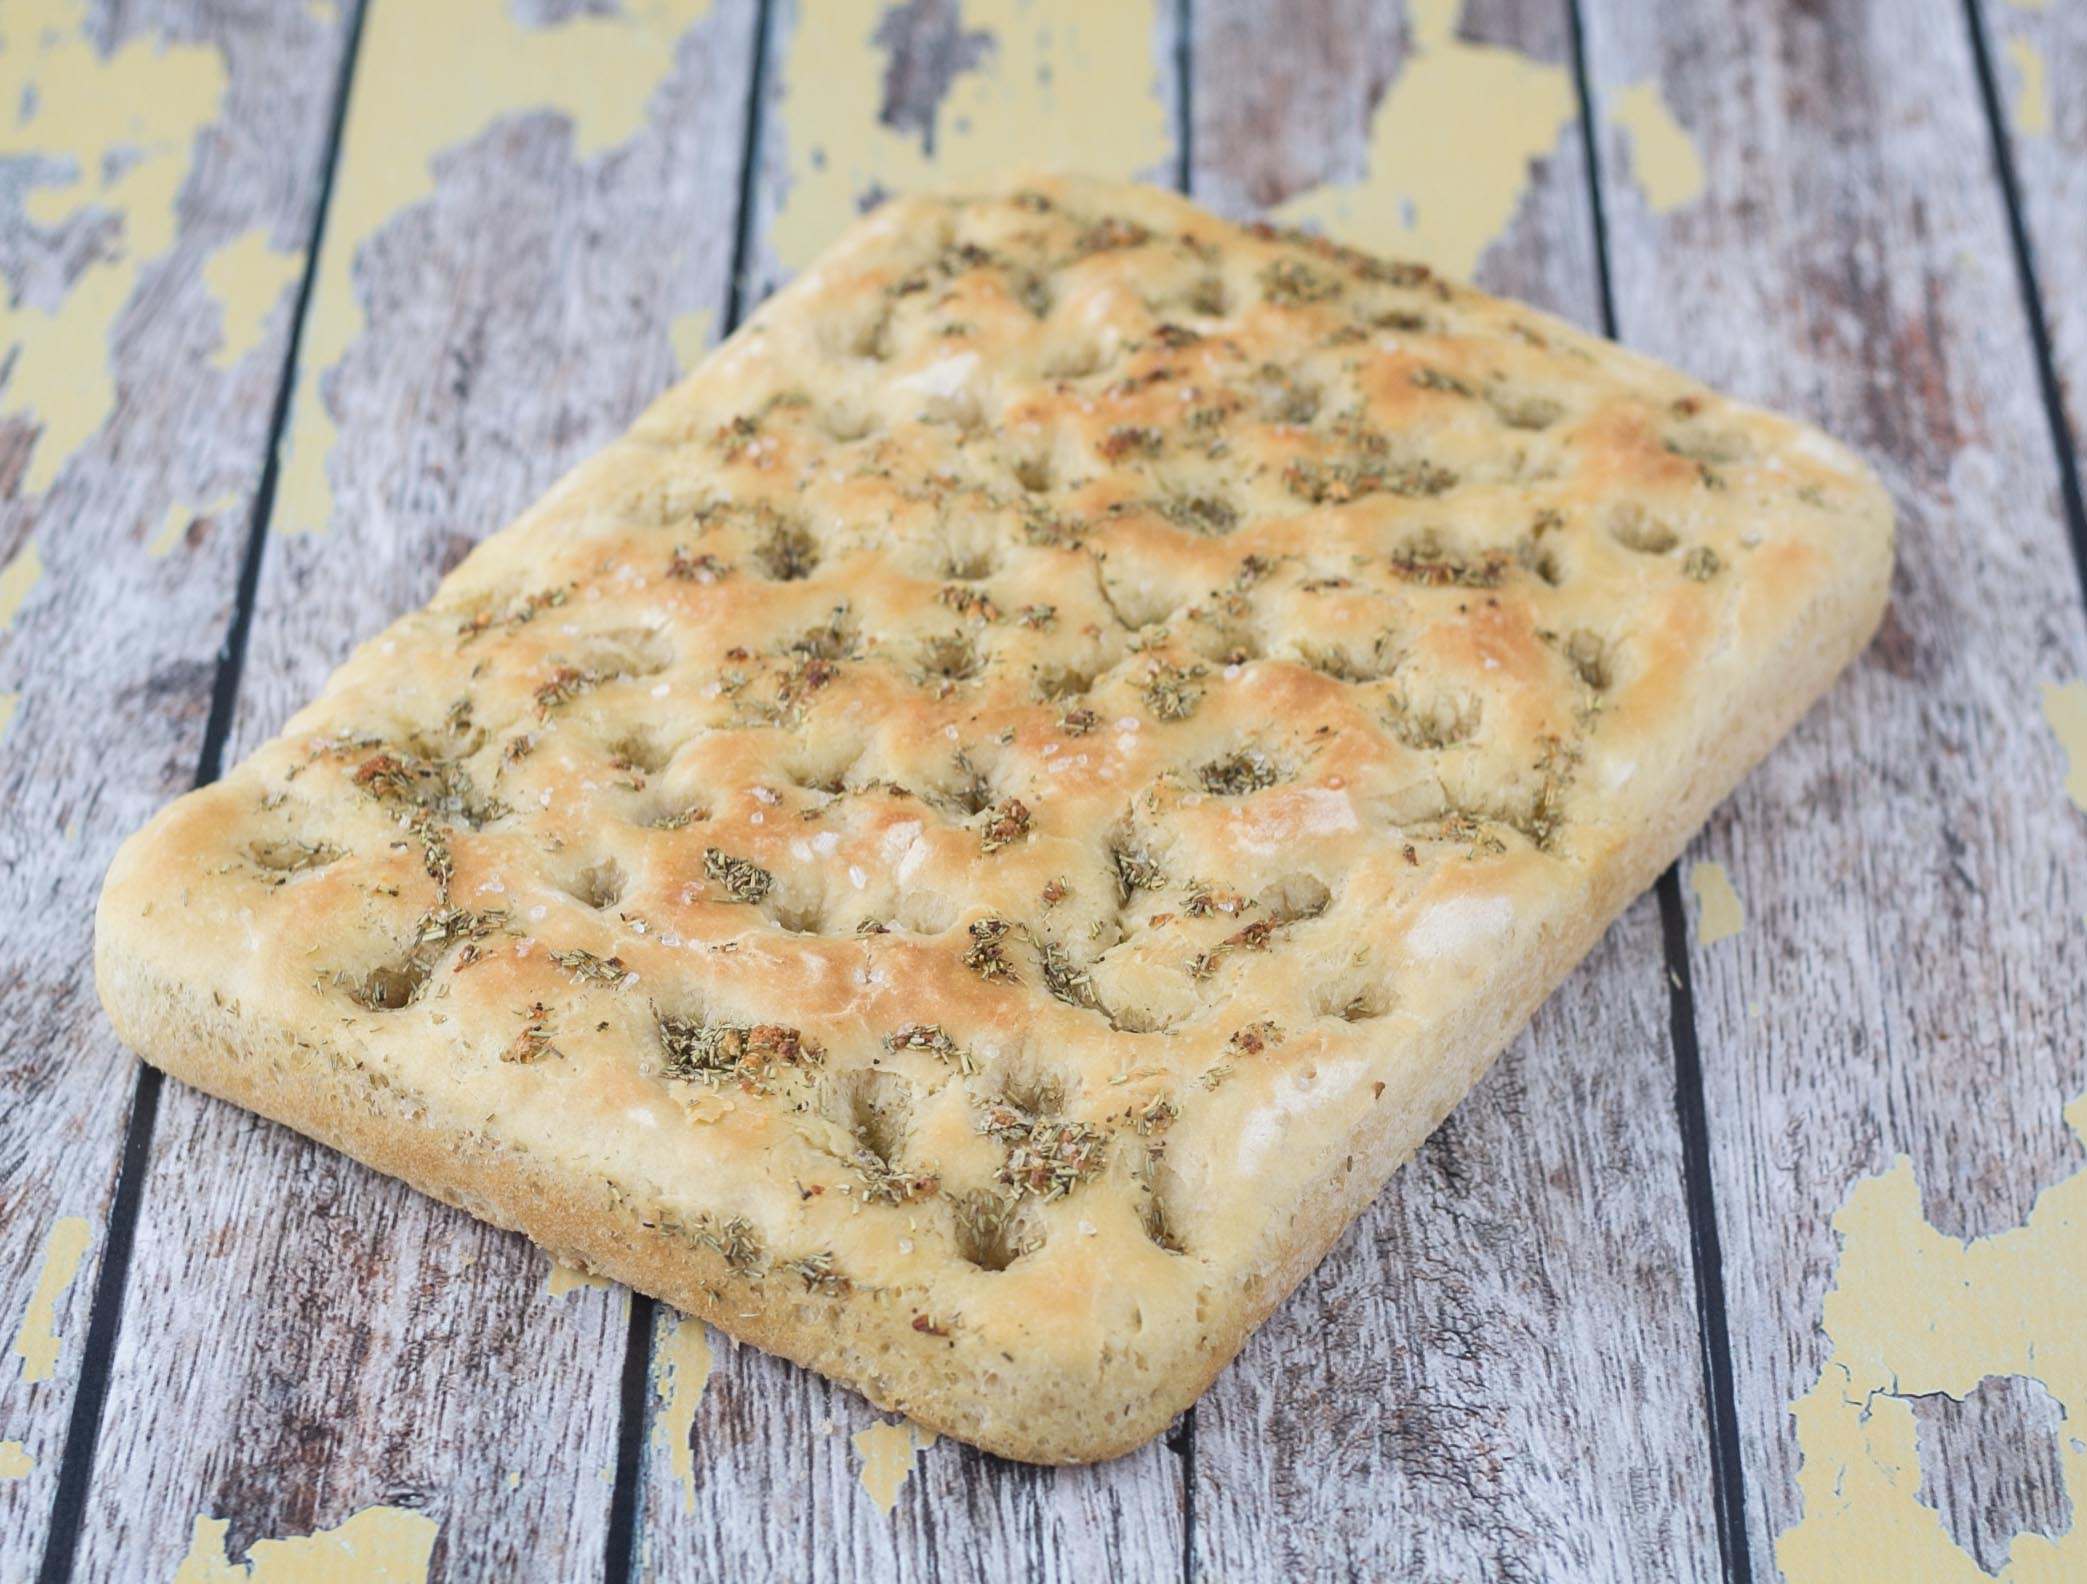 Recipe for Homemade Focaccia bread